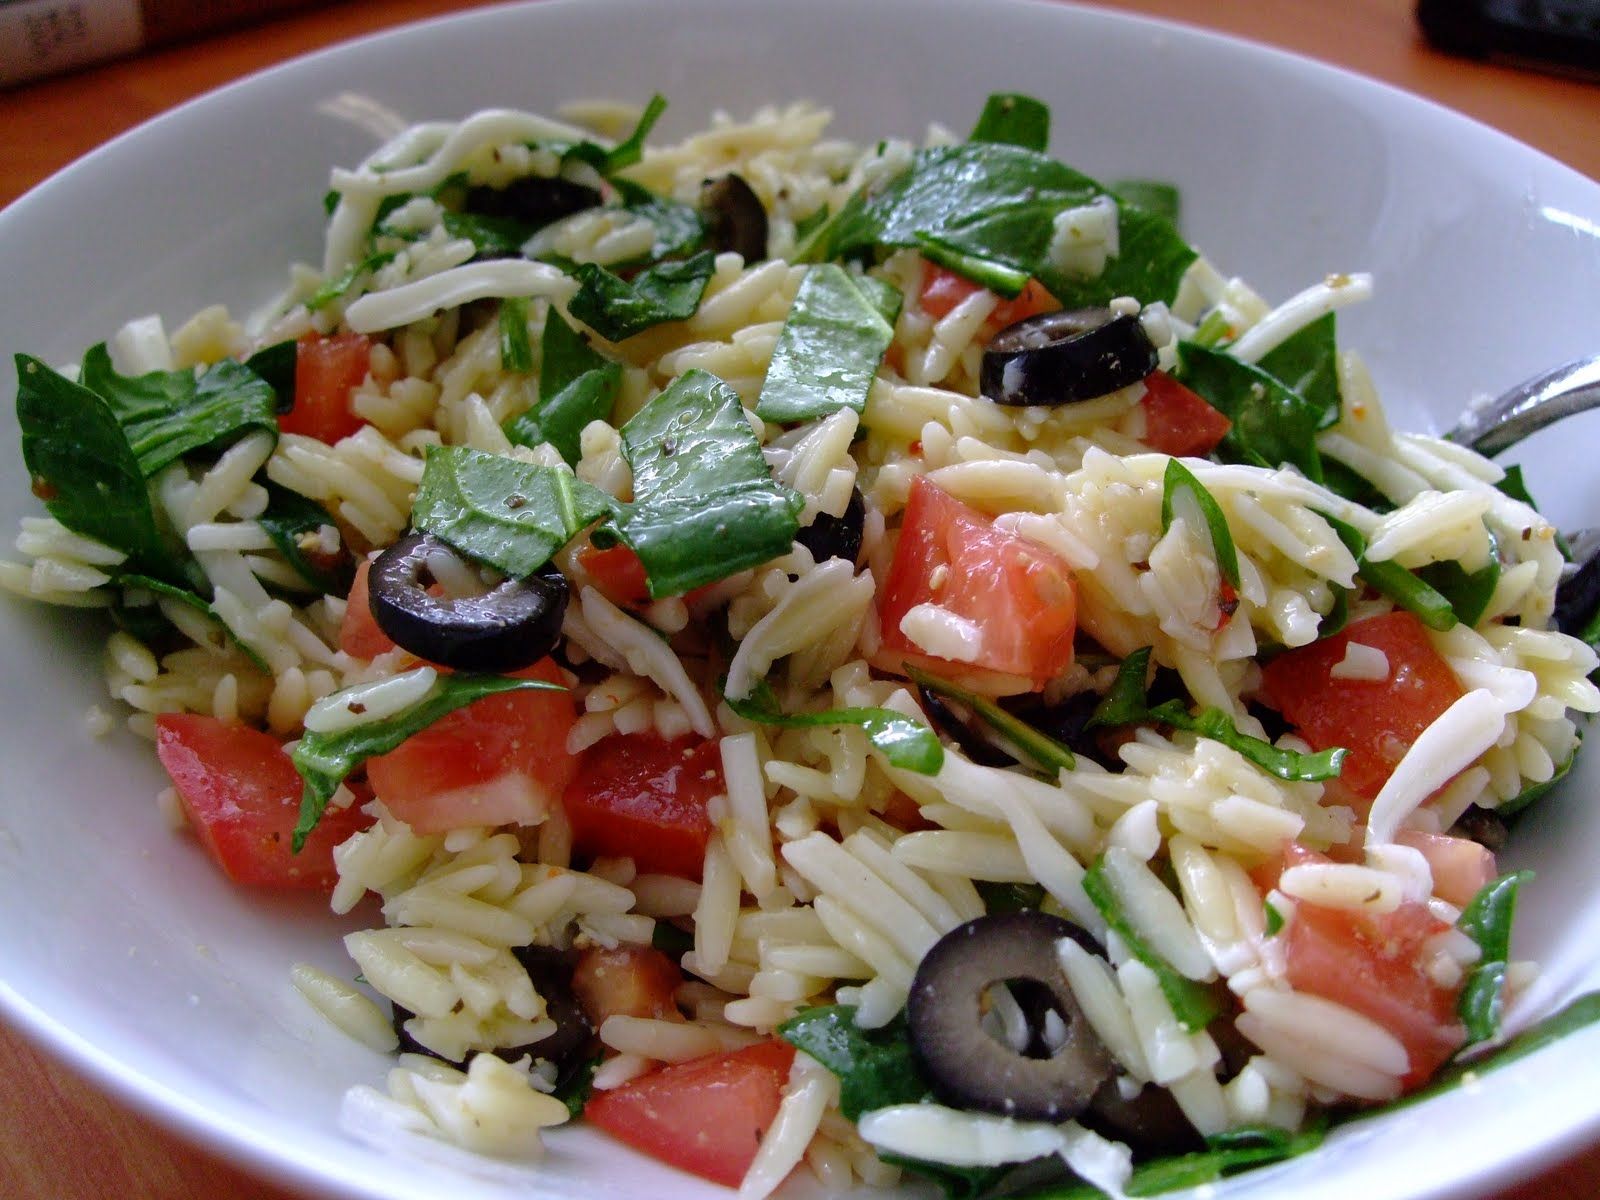 Selin: Spinach orzo salad